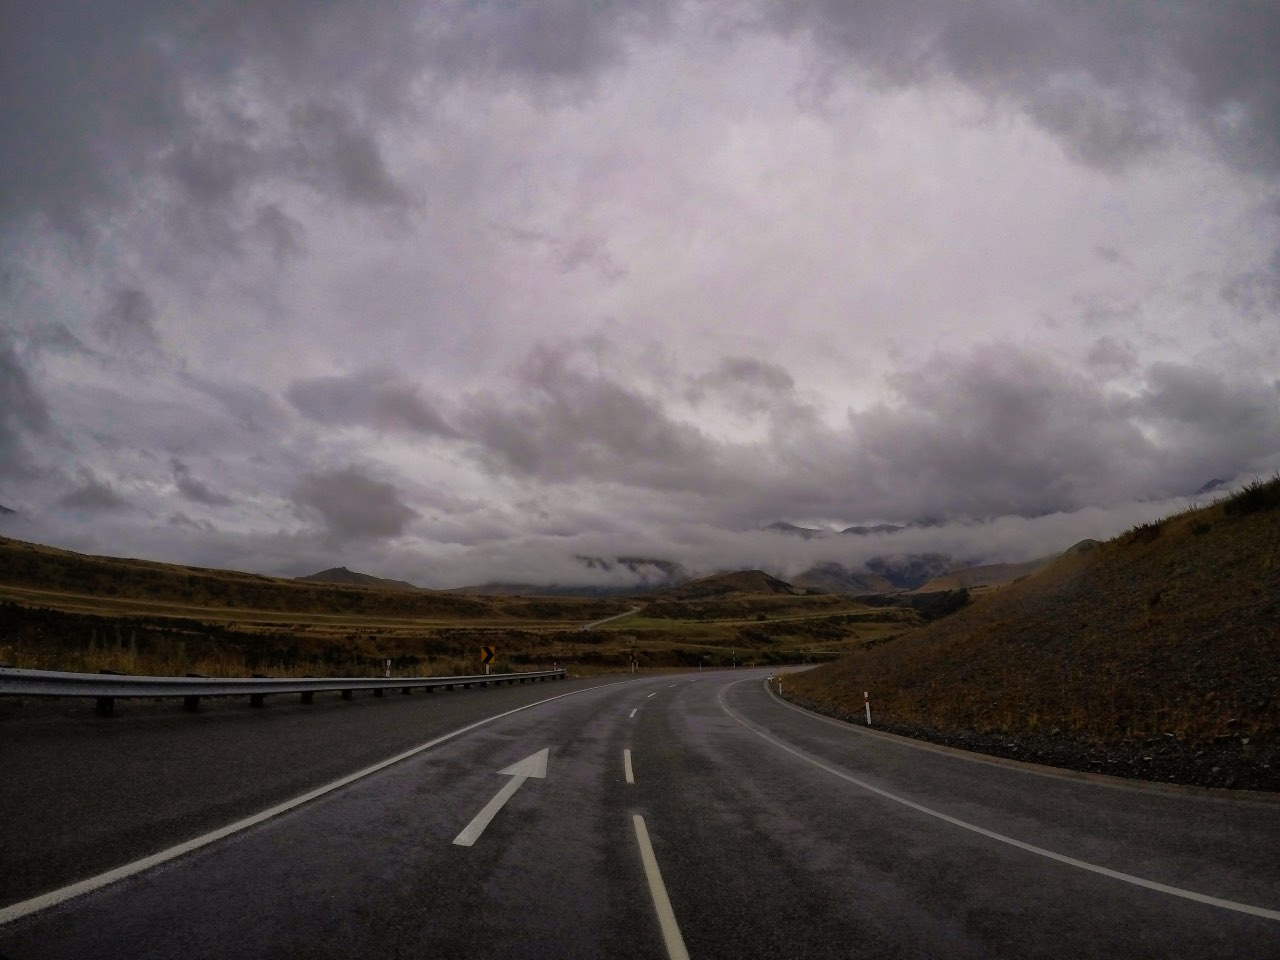 Arthurs-Pass-New-Zealand-rainy-day-Road-with-marks